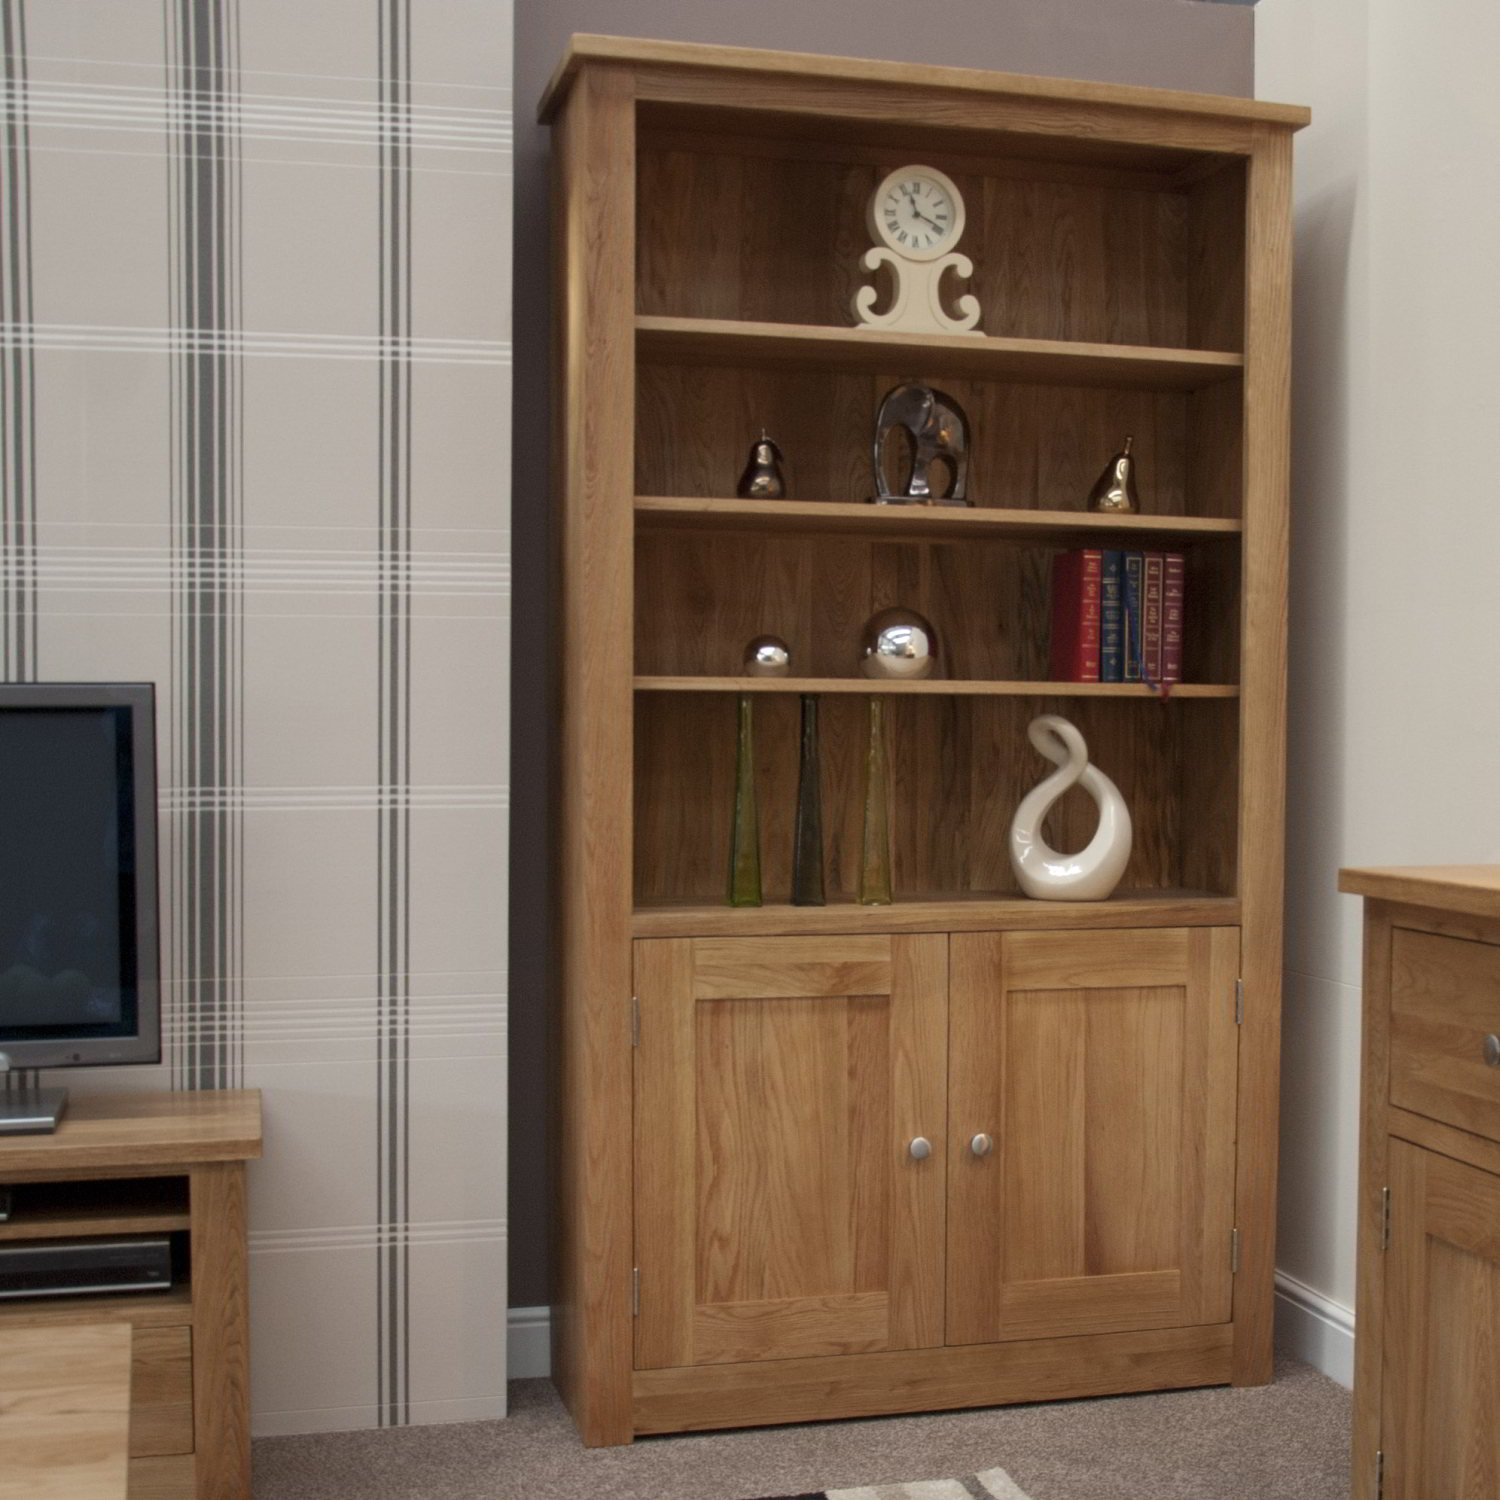 Kingston solid modern oak furniture two door living room for Door furniture uk